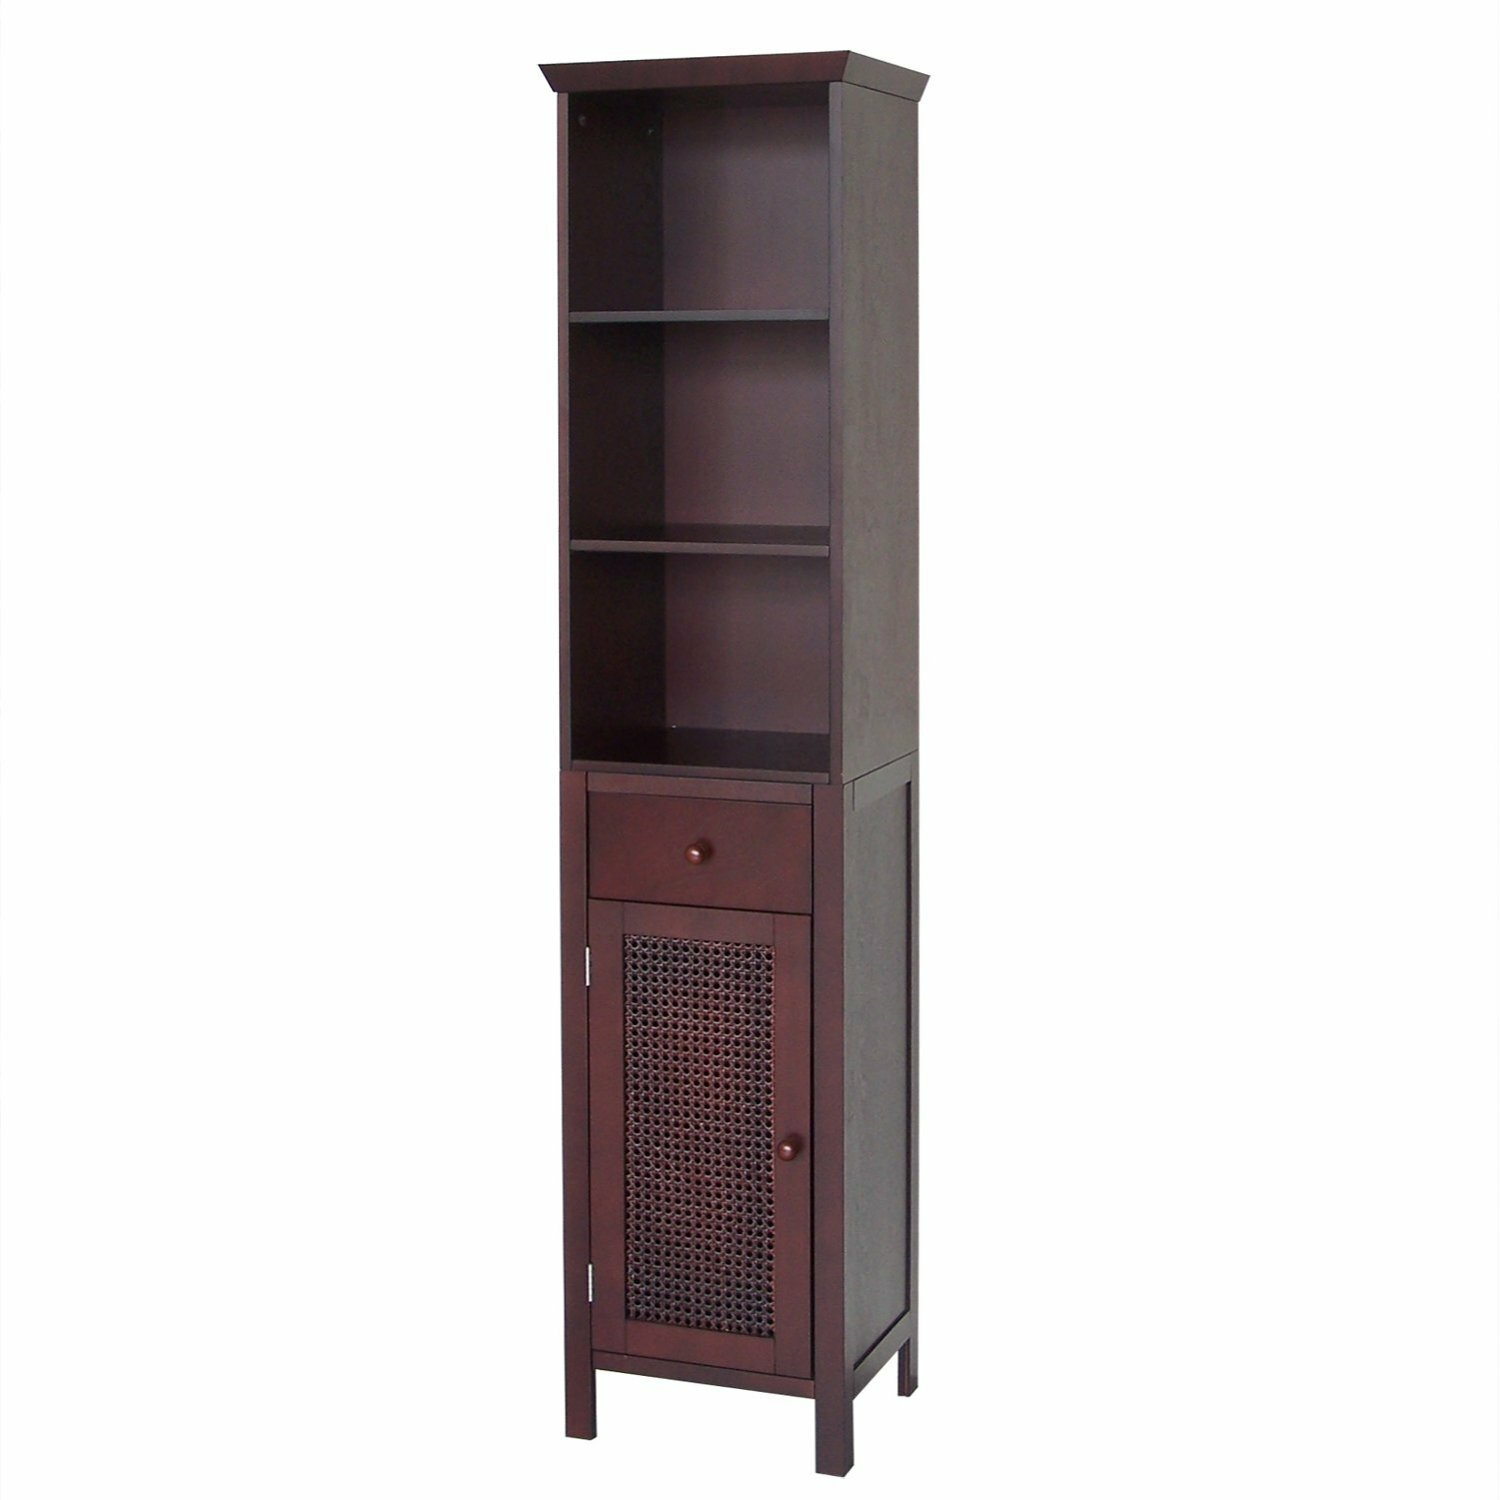 Cane 15 quot  W x 65 quot  H Linen Tower. Linen Cabinets  amp  Towers You  39 ll Love   Wayfair